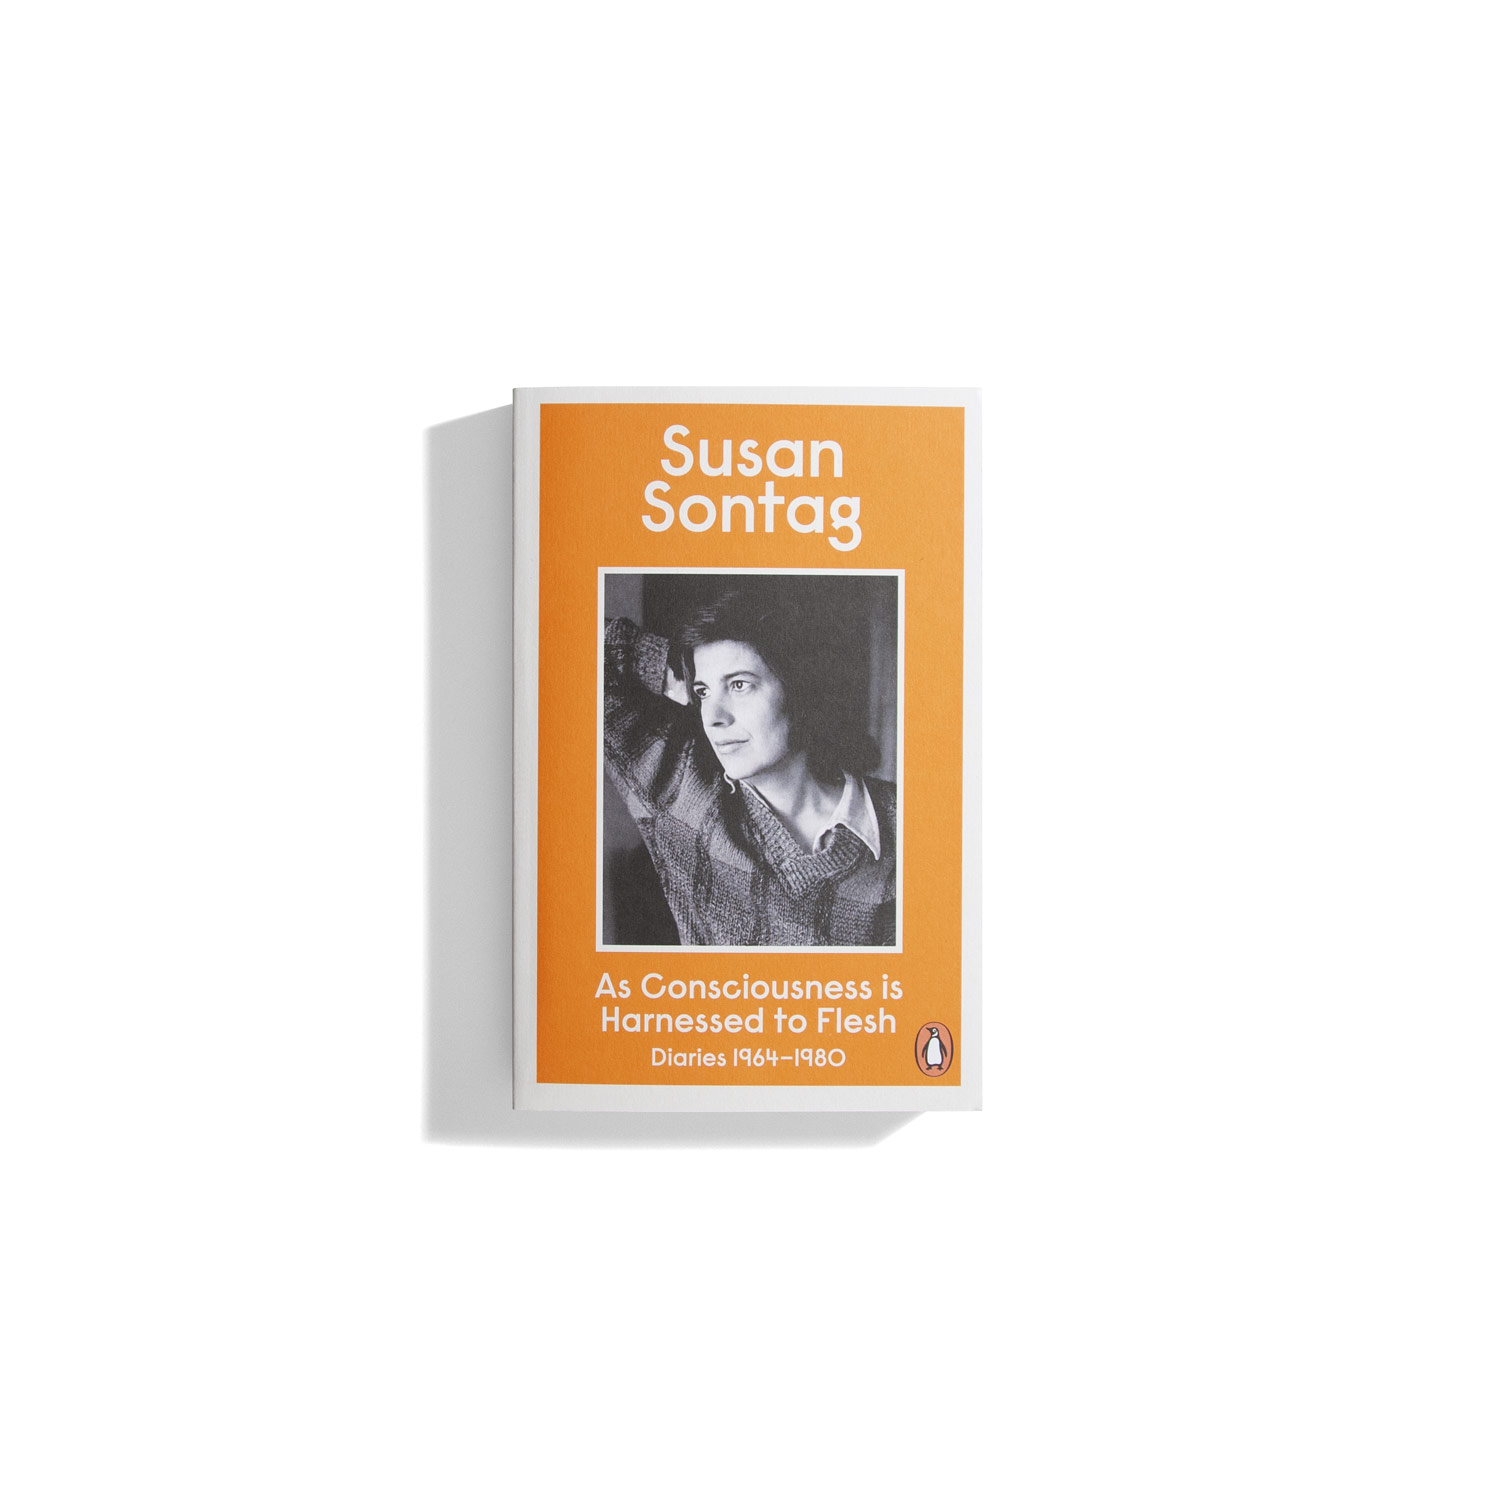 As Consciousness is Harnessed to Flesh: Diaries 1964-1980 - Susan Sontag